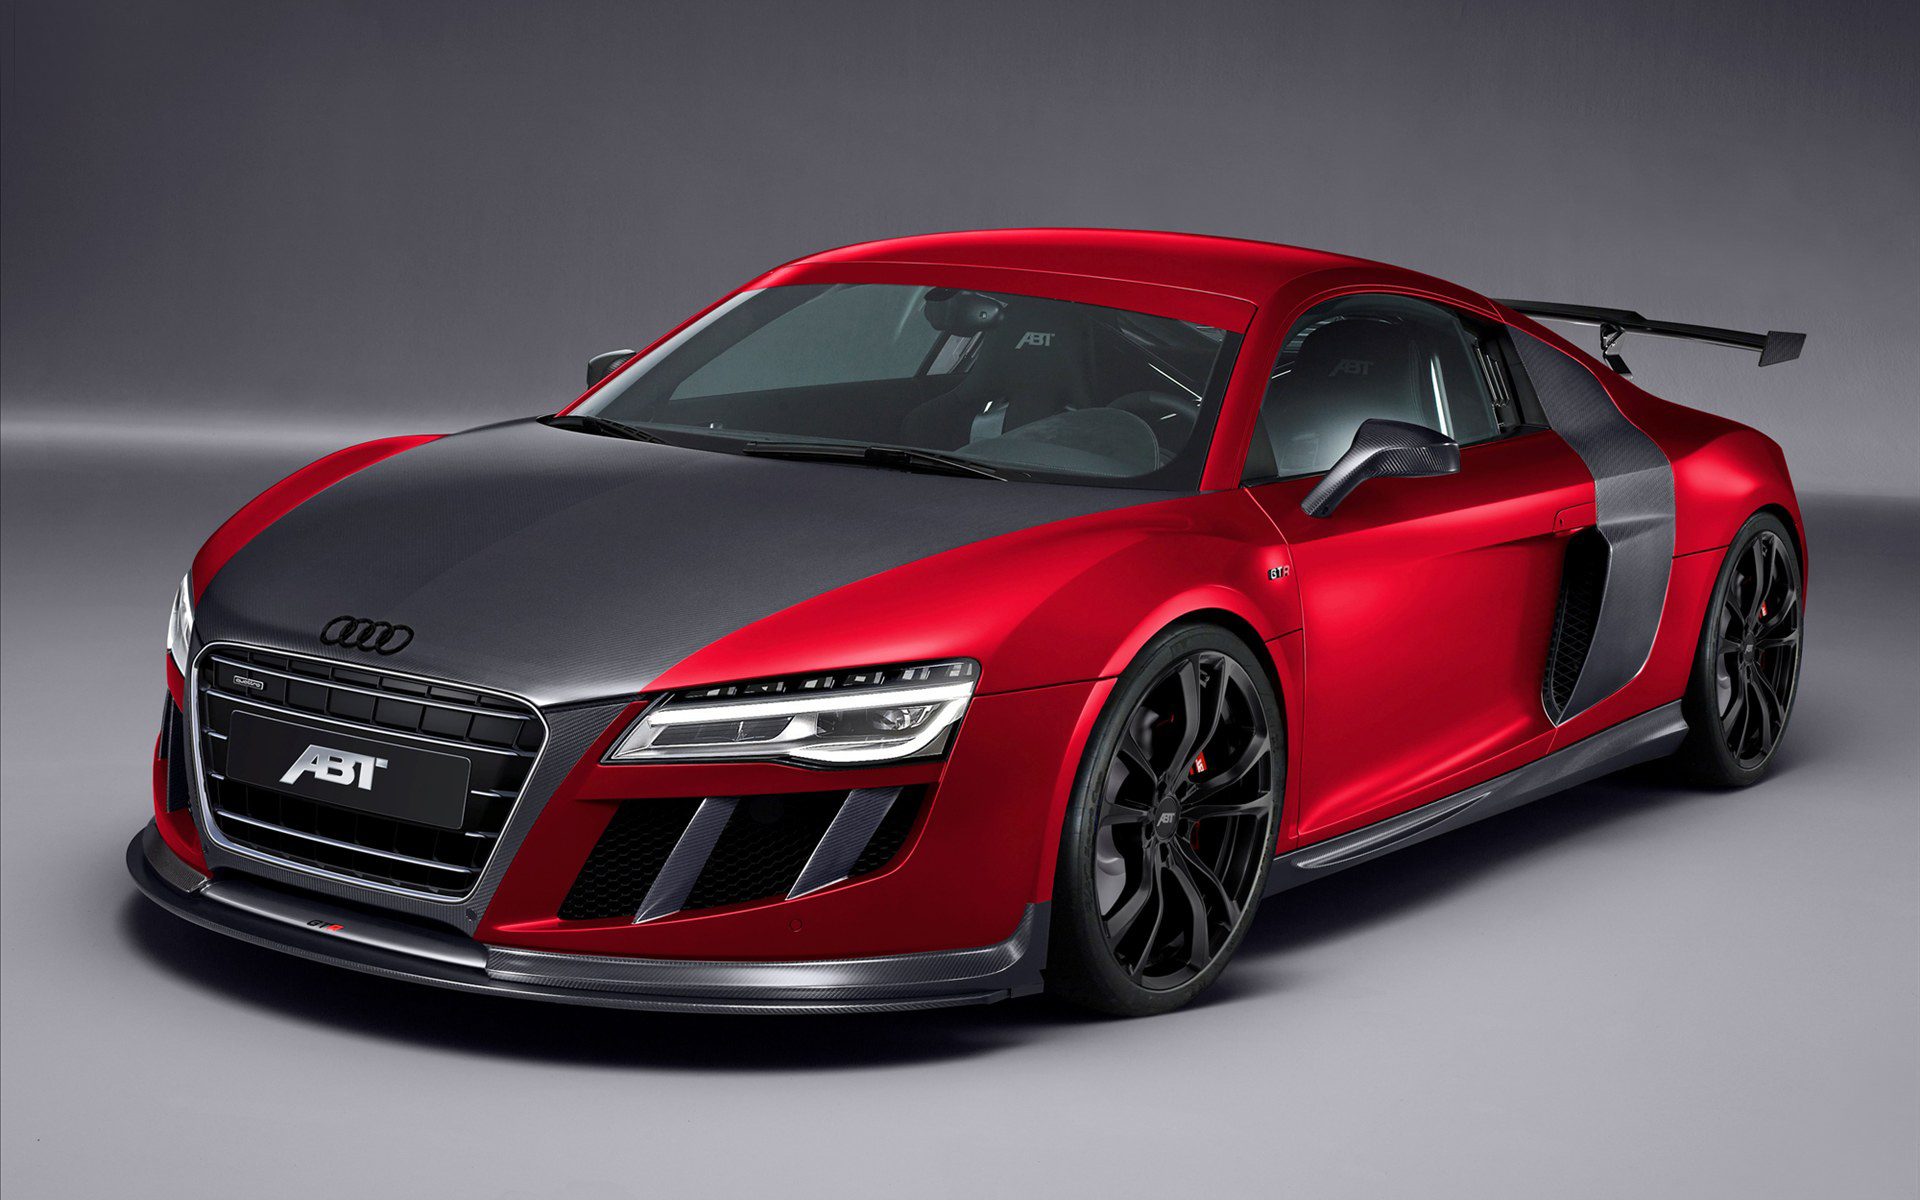 2013 ABT Audi R8 GTR Wallpaper HD Car Wallpapers 1920x1200